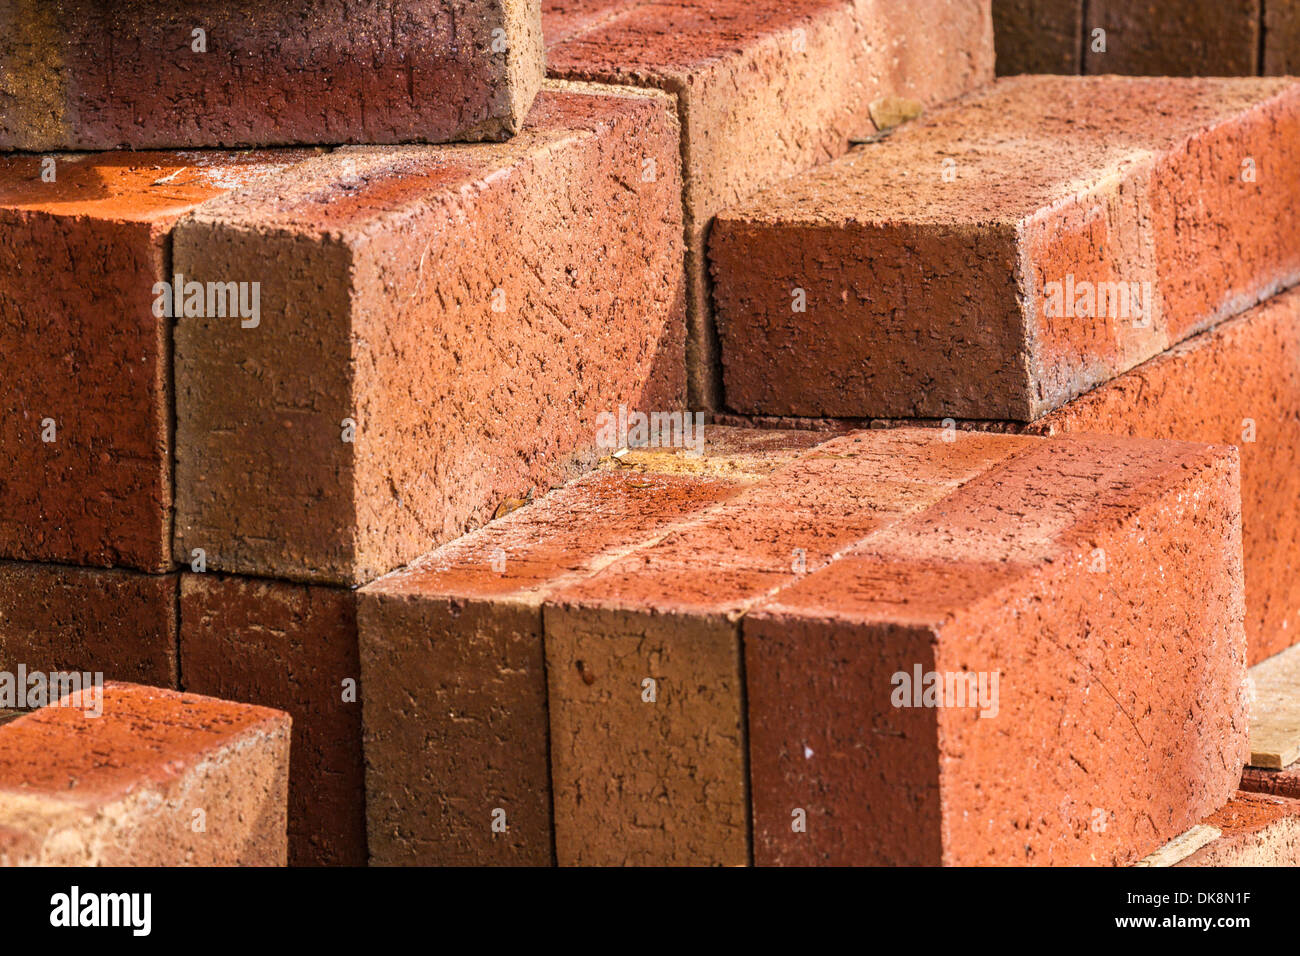 Stack of red bricks forms abstract geometric angular shapes - Stock Image